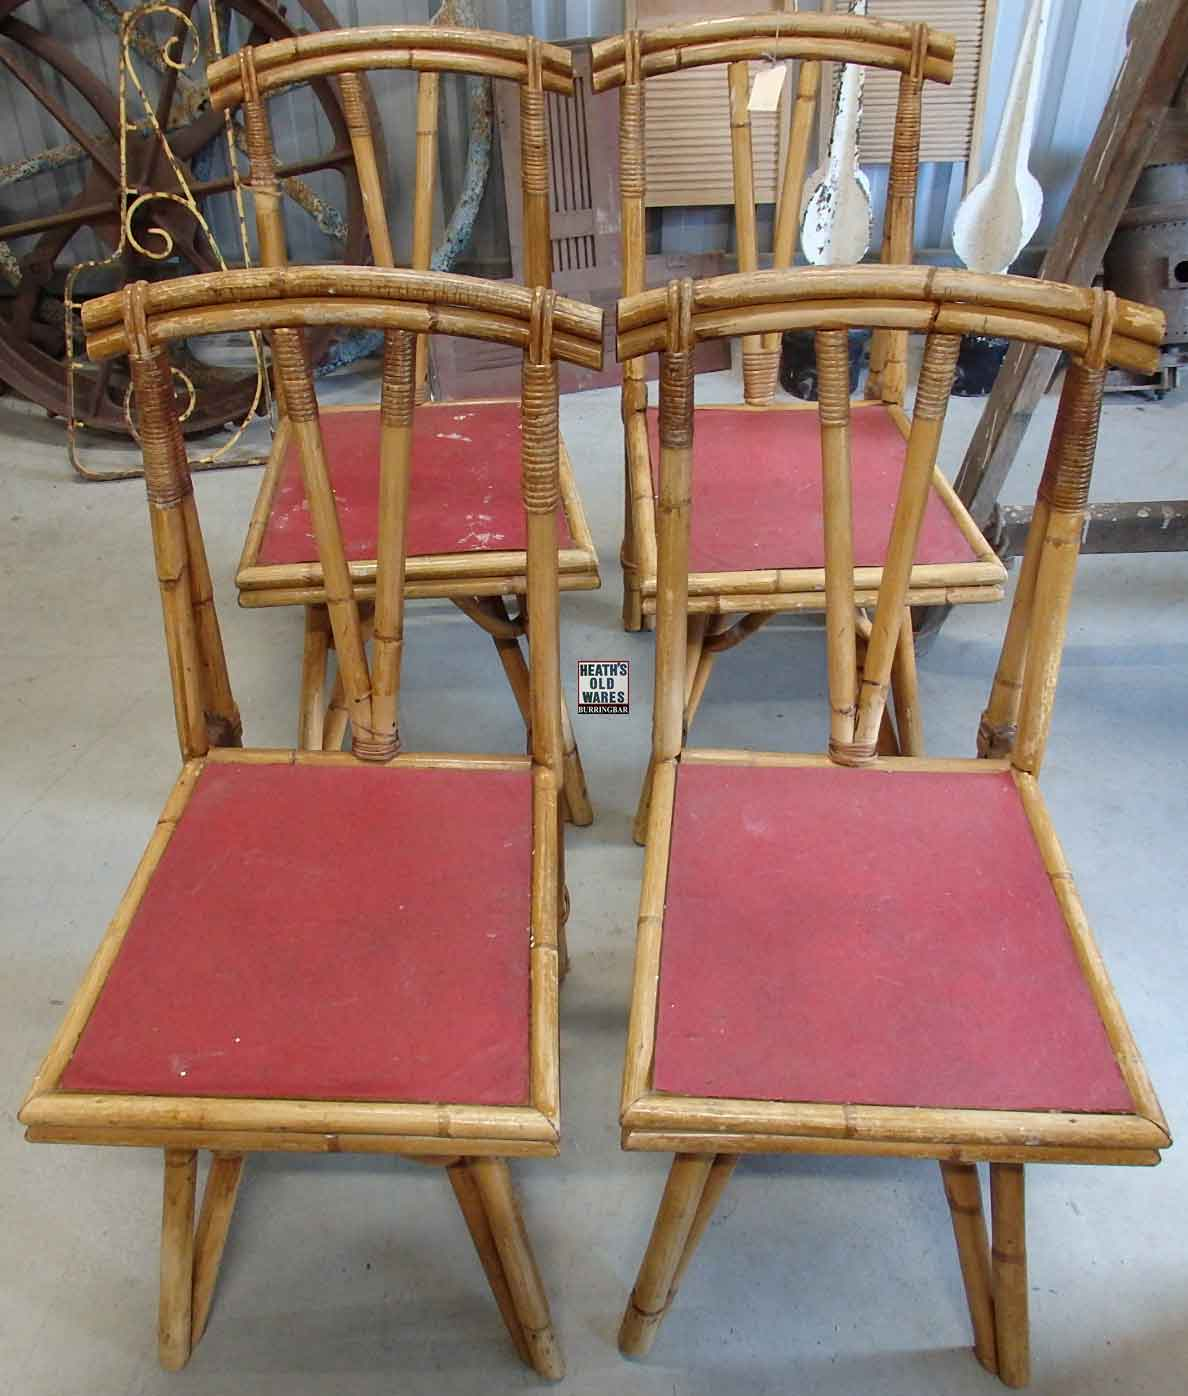 Set of 4 cane chairs $180 for sale at Heaths Old Wares, Collectables, Antiques & Industrial Antiques, 19-21 Broadway, Burringbar NSW 2483 Ph 0266771181 open 7 days